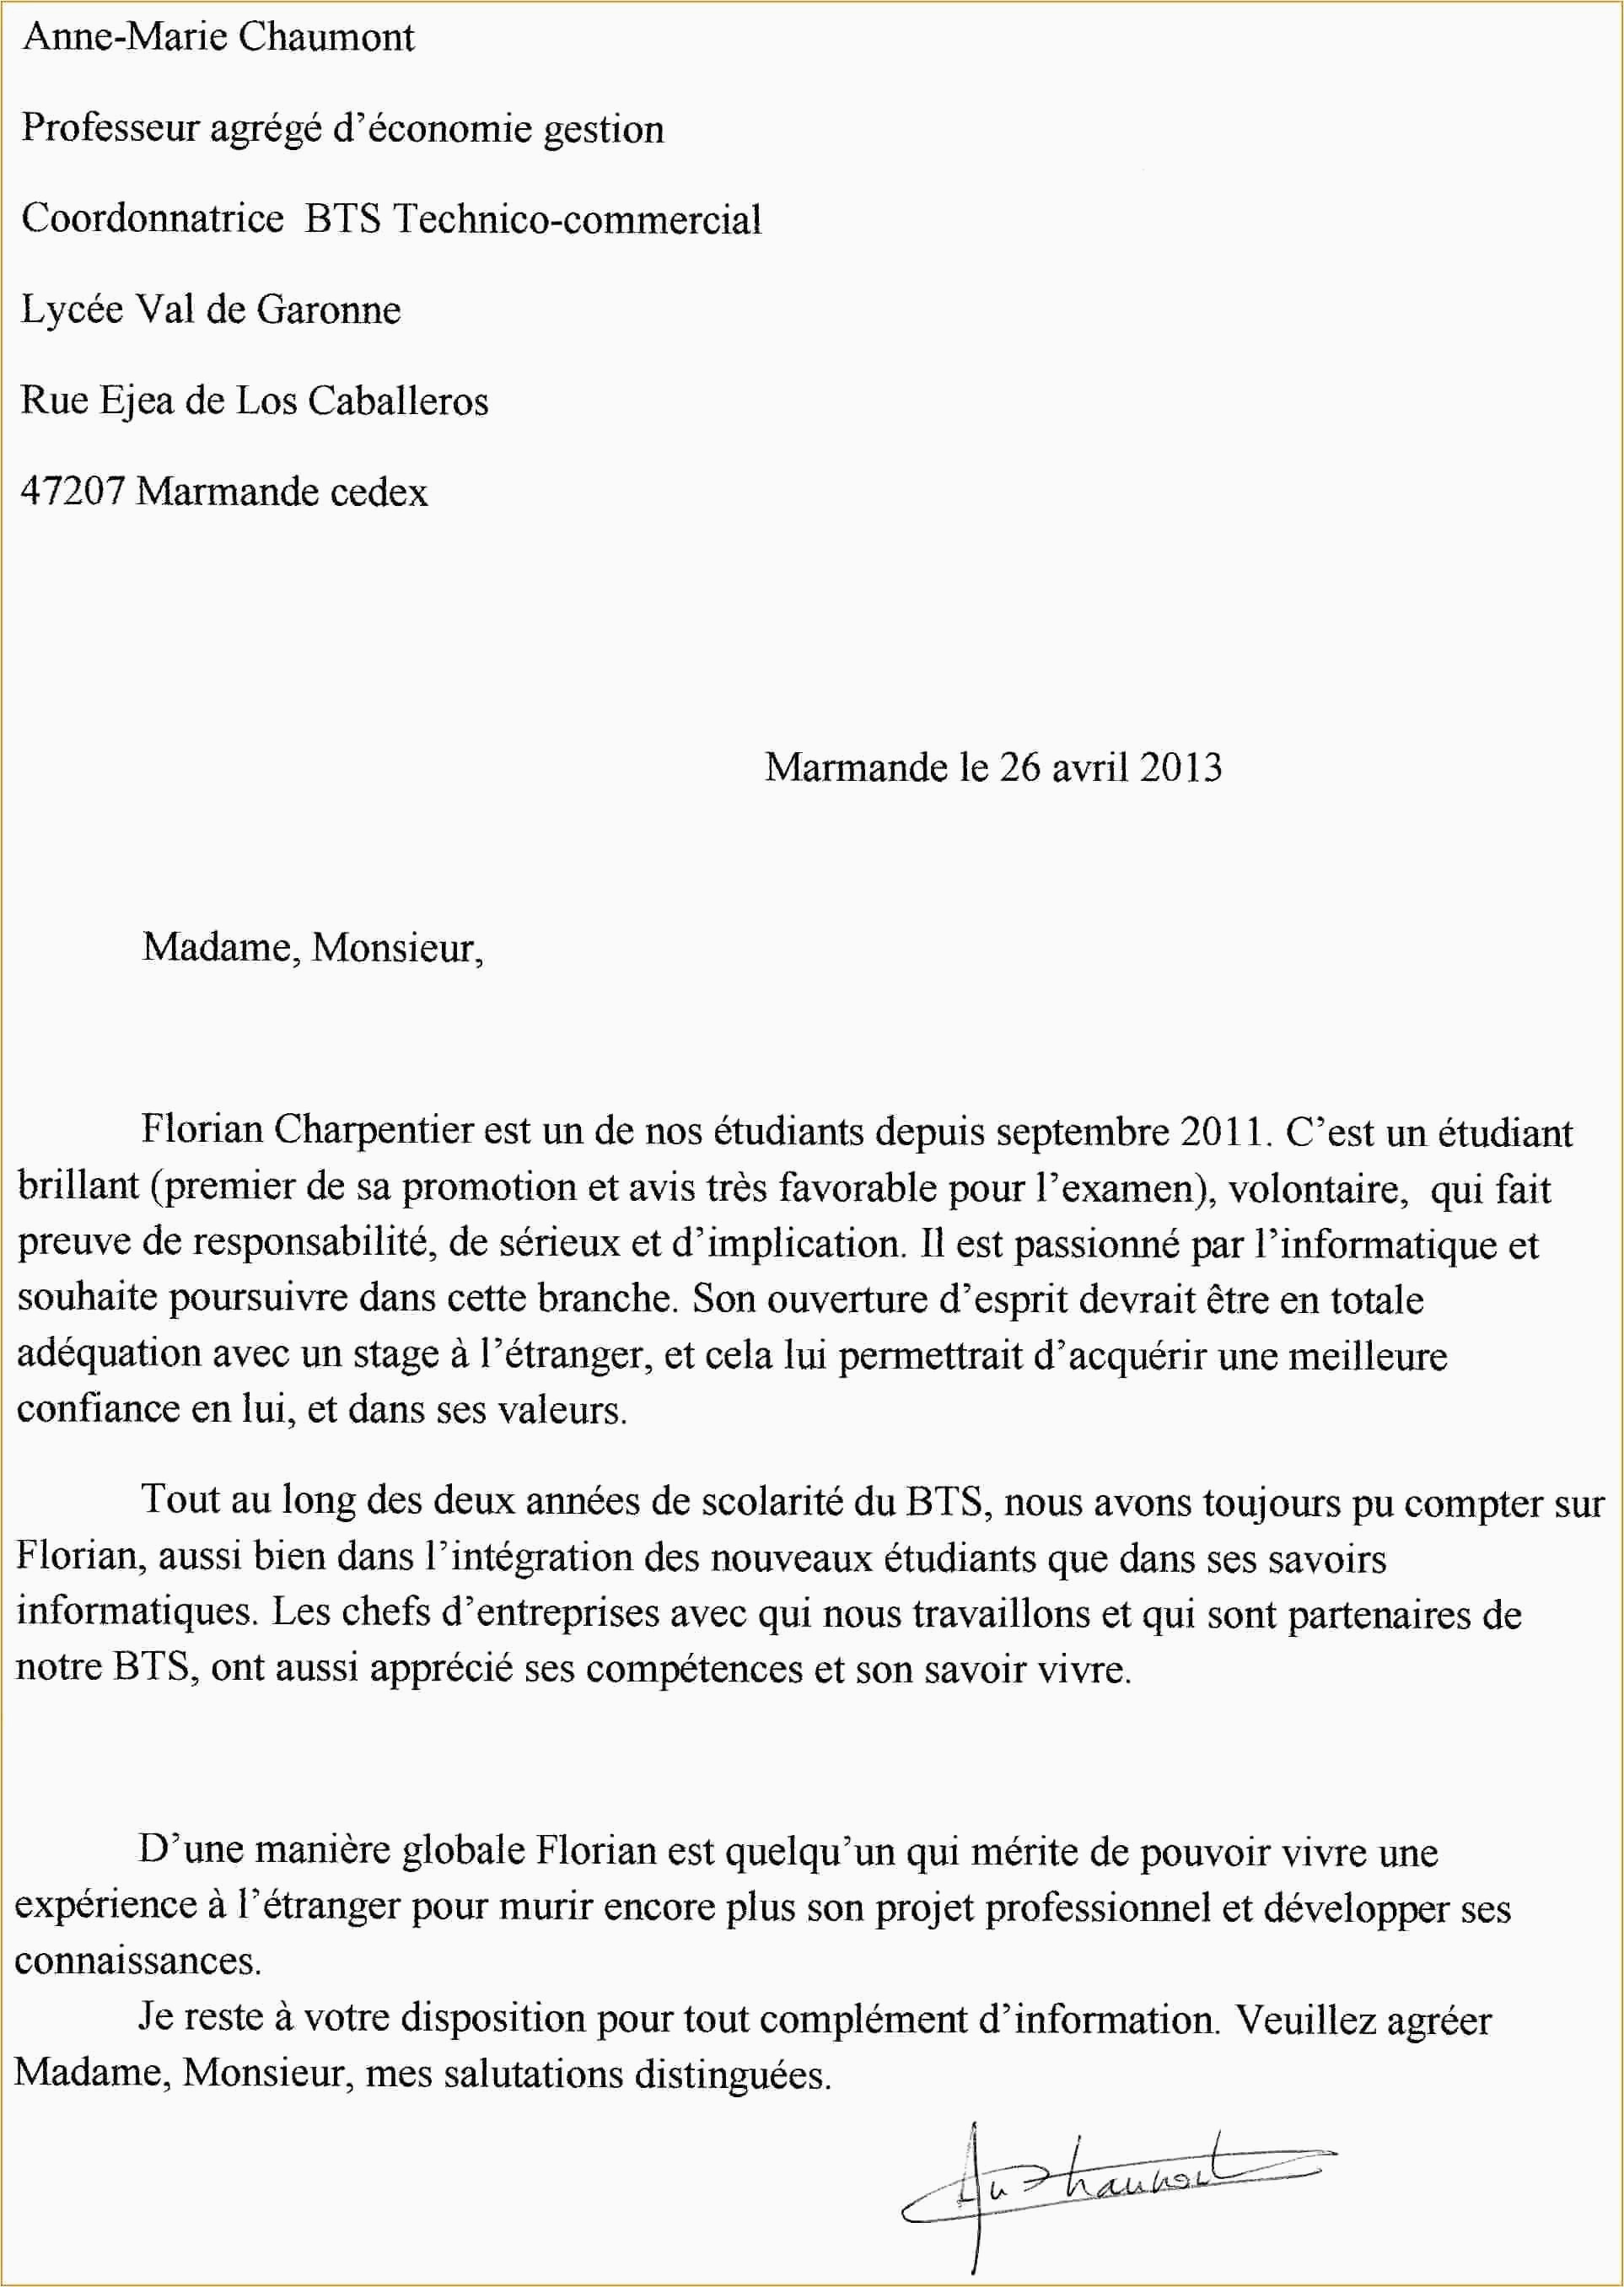 Lettre De Motivation Stage Maison De Retraite Sans Experience Lovely Lettre De Motivation Maison De Retraite Sans Experience